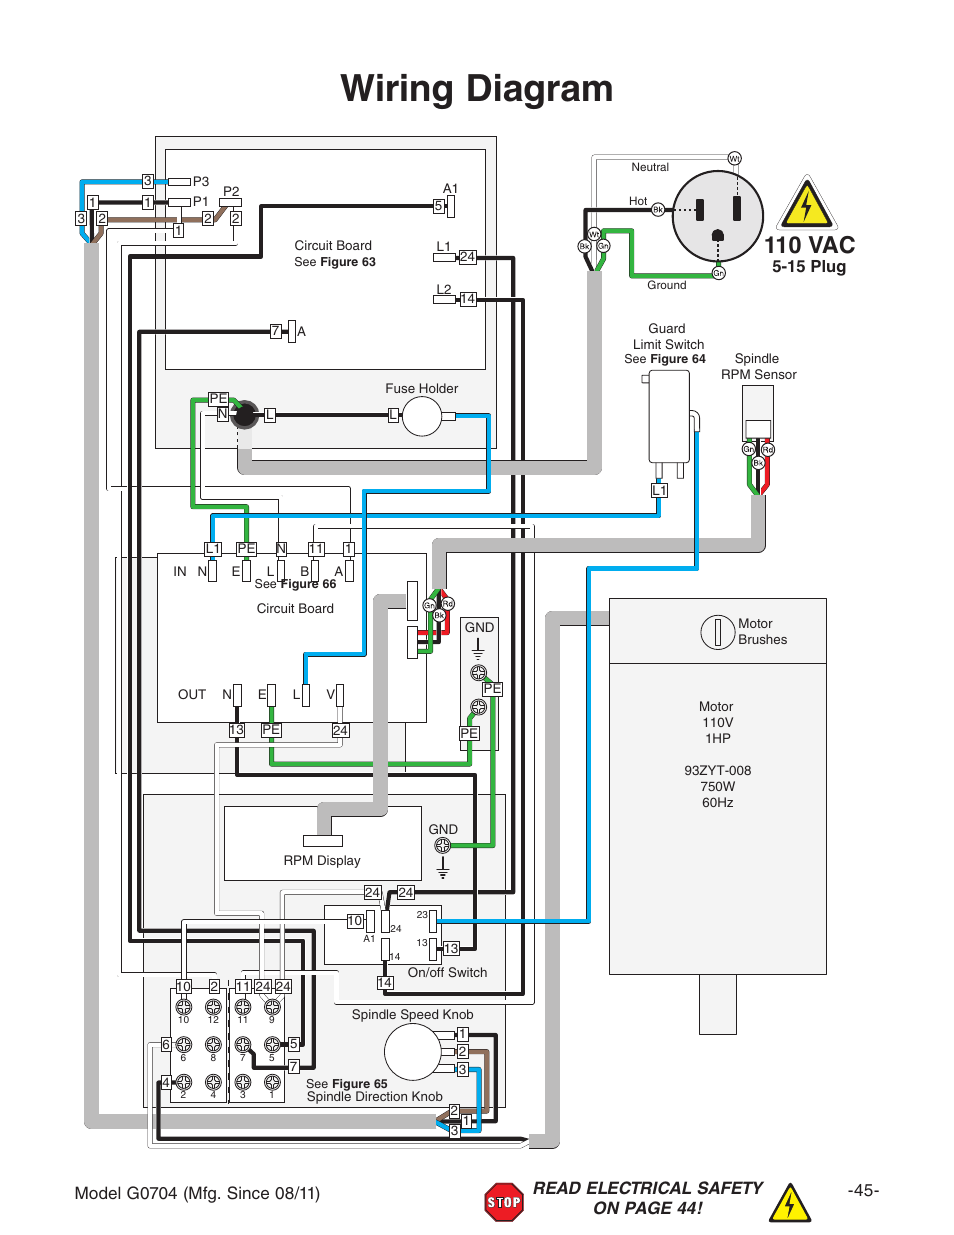 Wiring       diagram        110    vac   Grizzly G0704 User Manual   Page 47  60